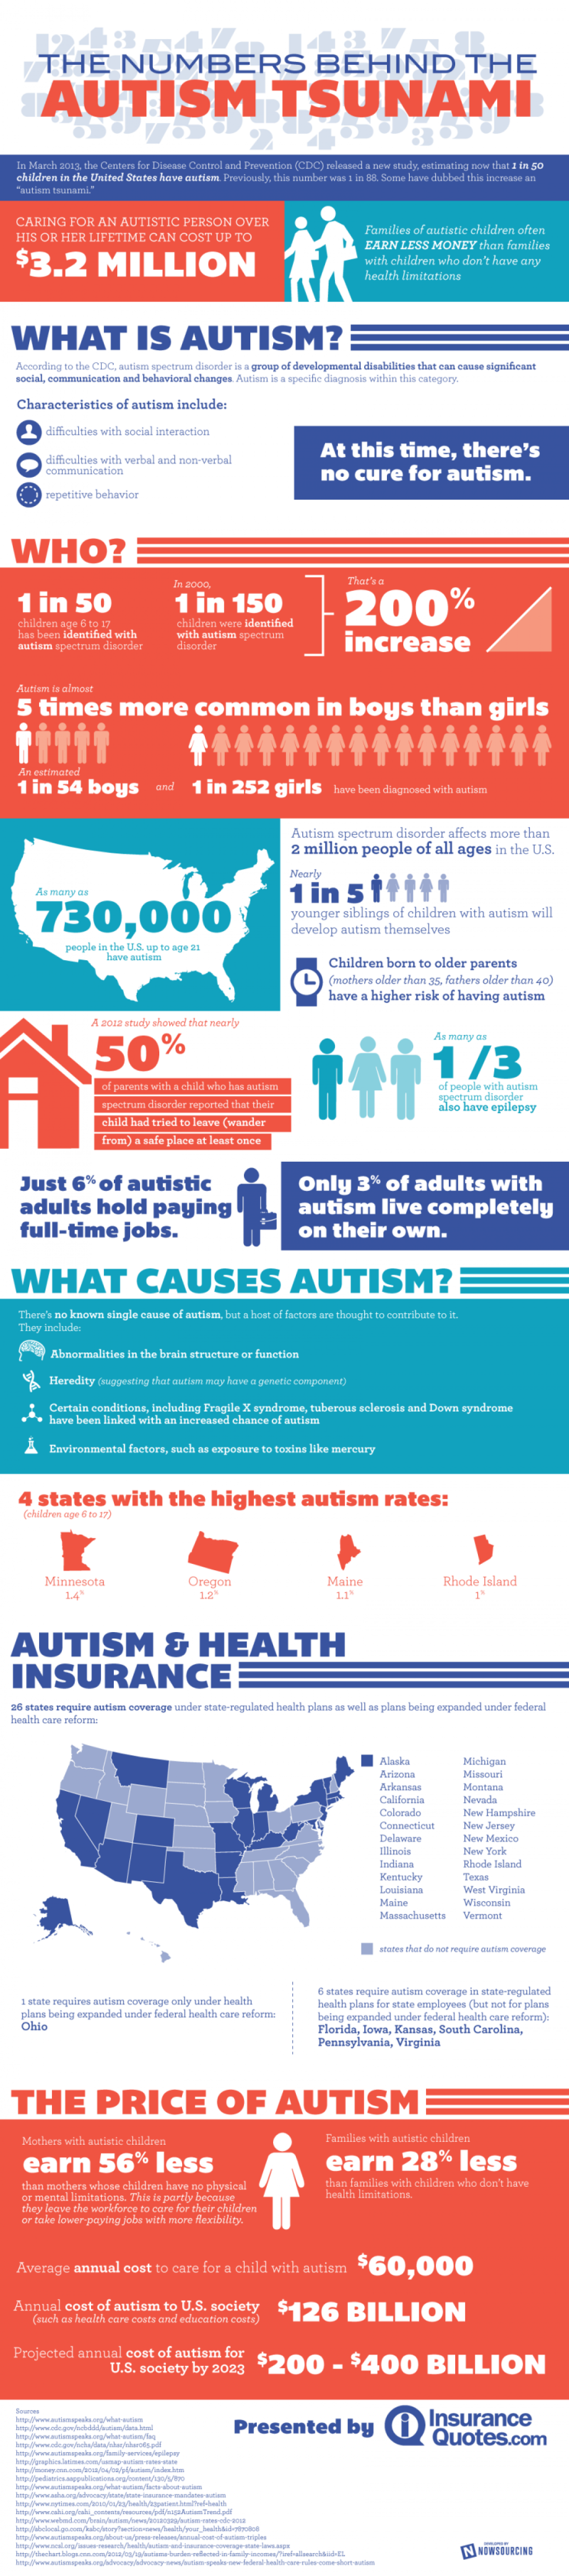 From 1-in-150 to 1-in-50: The Frightening Rise of Autism - Infographic